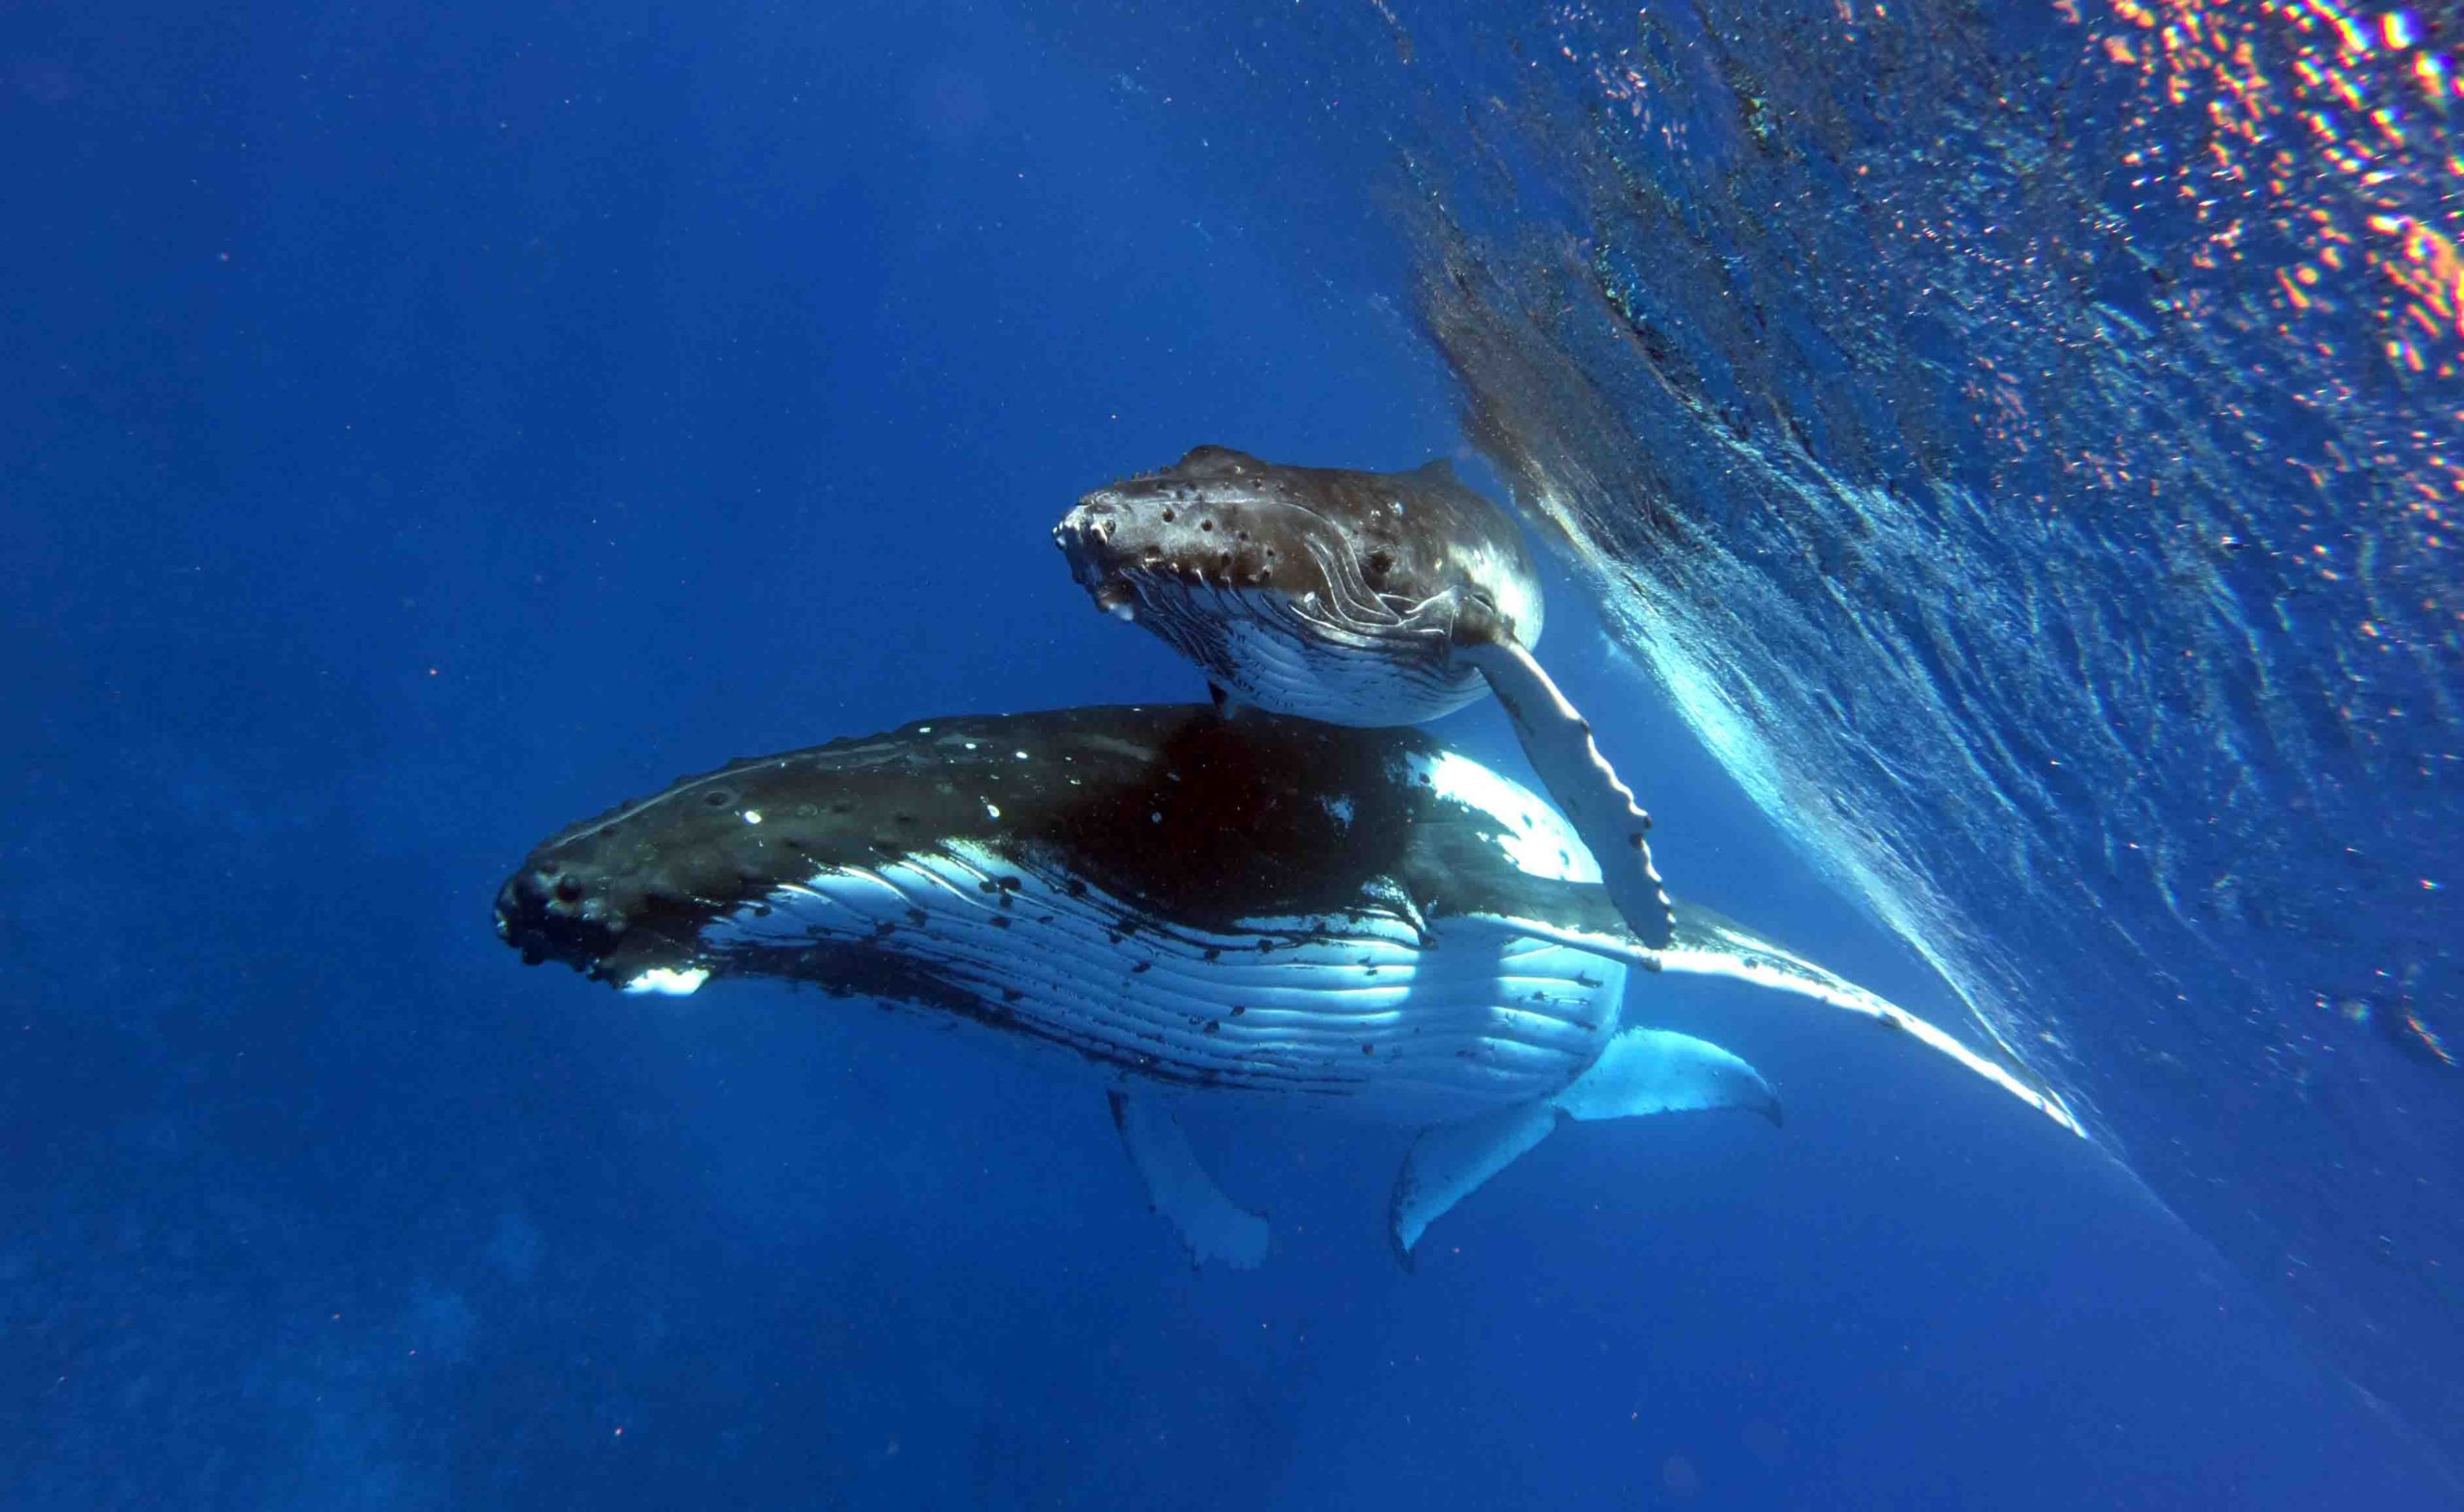 Whale Swim Whale watching Humpback Best private Boat Snorkeling Tour Moorea french Polynesia Tahiti